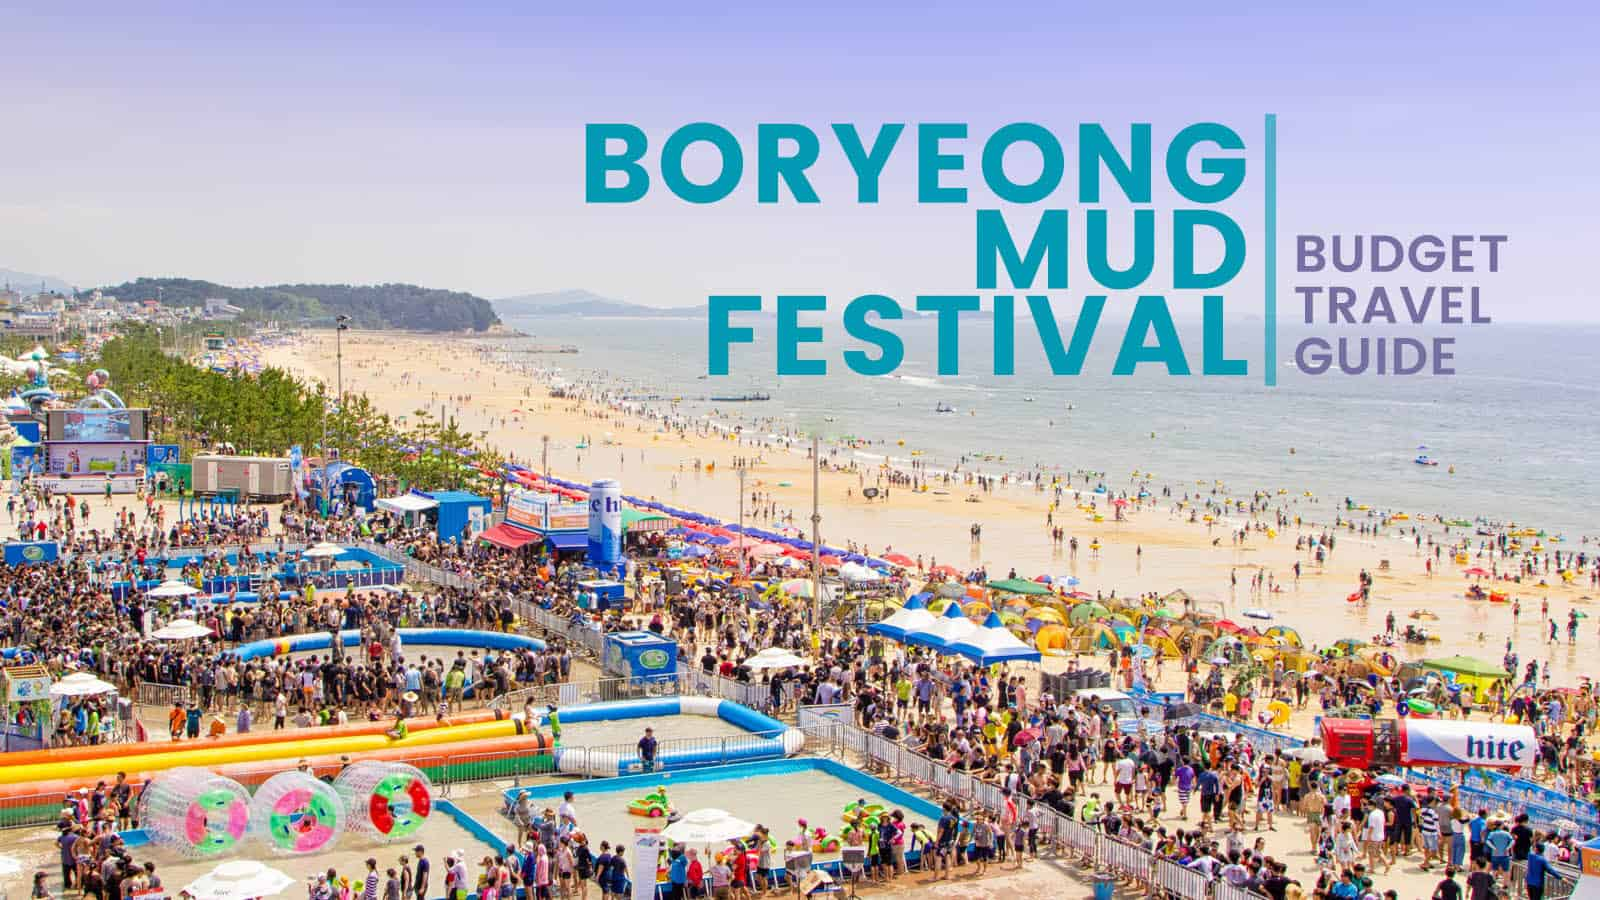 BORYEONG MUD FESTIVAL: Budget Travel Guide & Itinerary